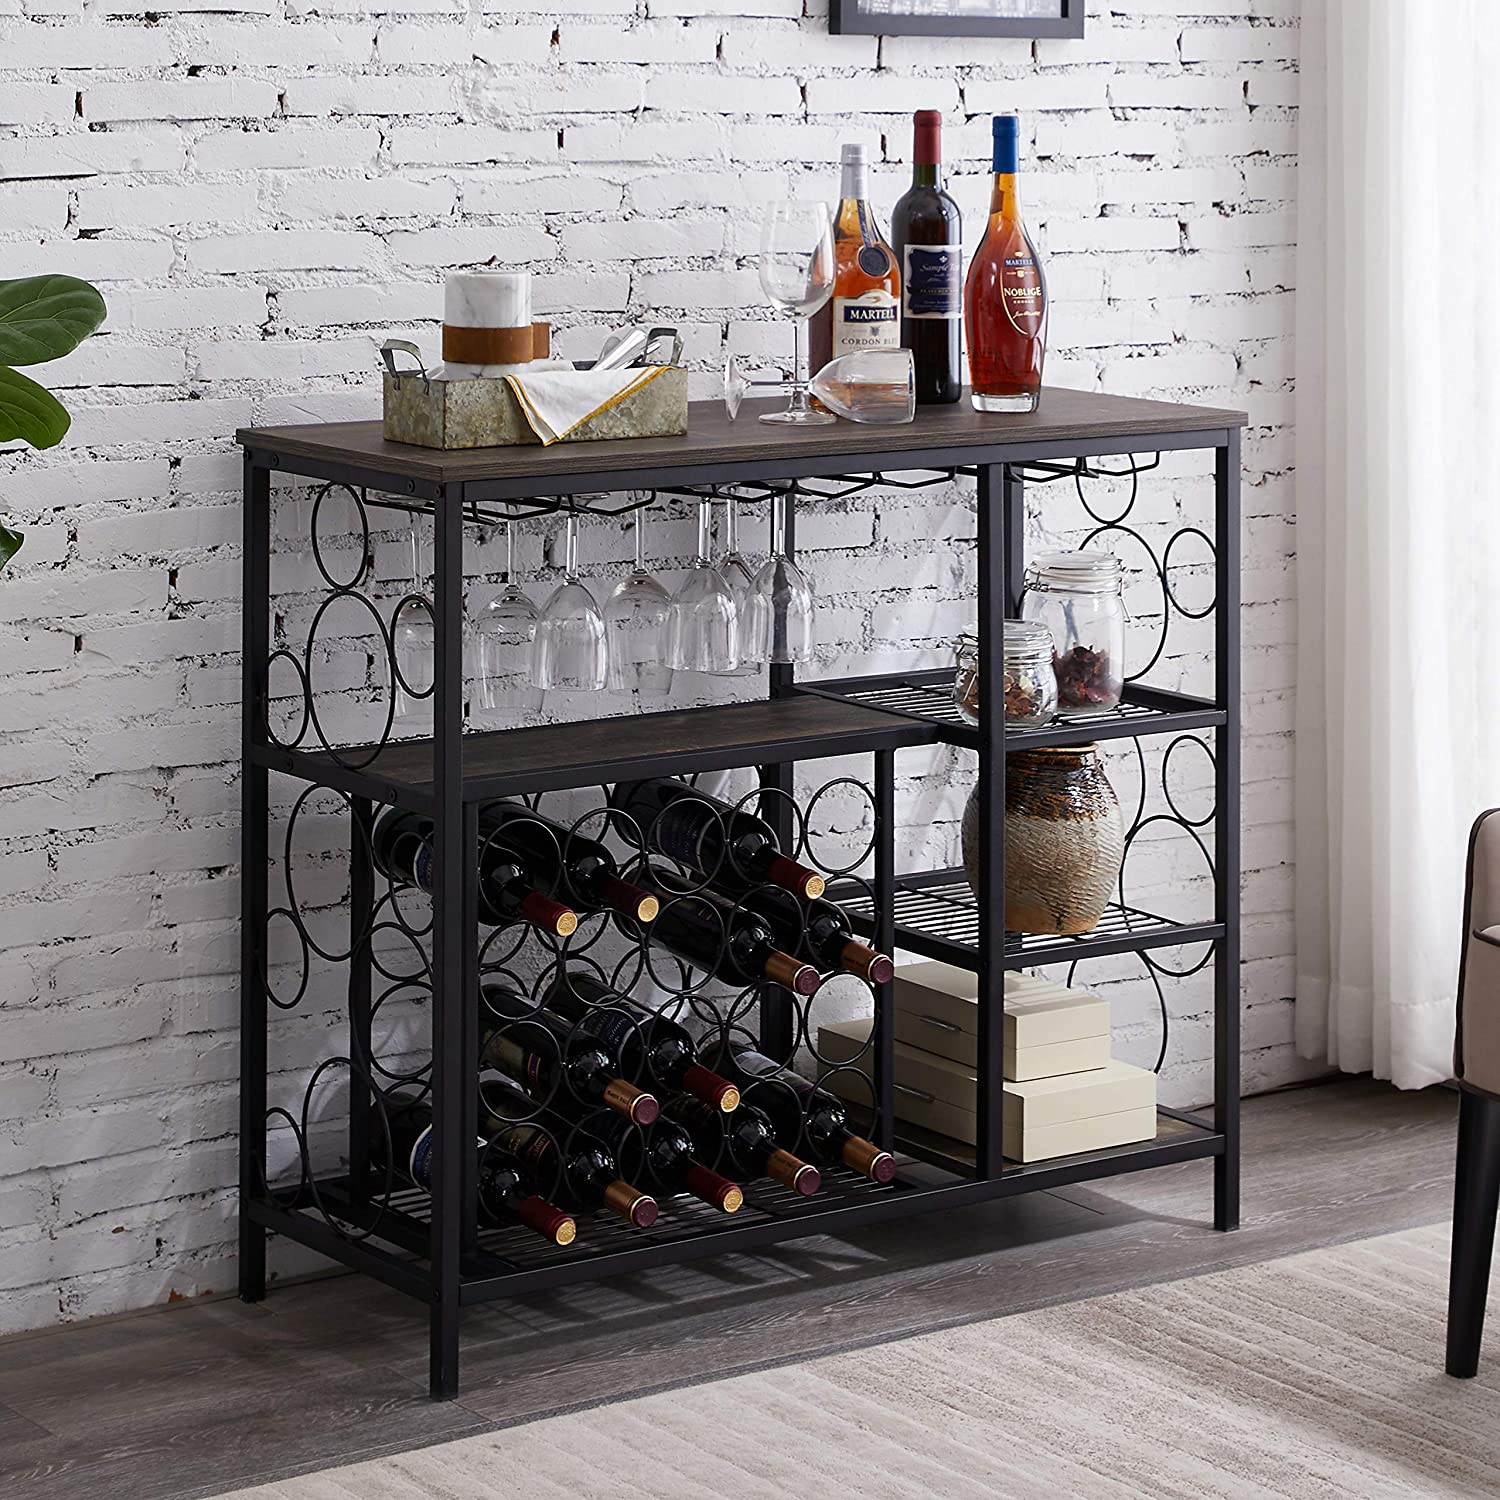 """Hombazaar Industrial Wine Rack Table with Glass Holder, Metal and Wood Wine Bar Cabinet with 20 Bottles Wine Storage, Console Table with Wine Rack for Home Kitchen, Gray-Brown Finish, 33.7"""" Tall"""